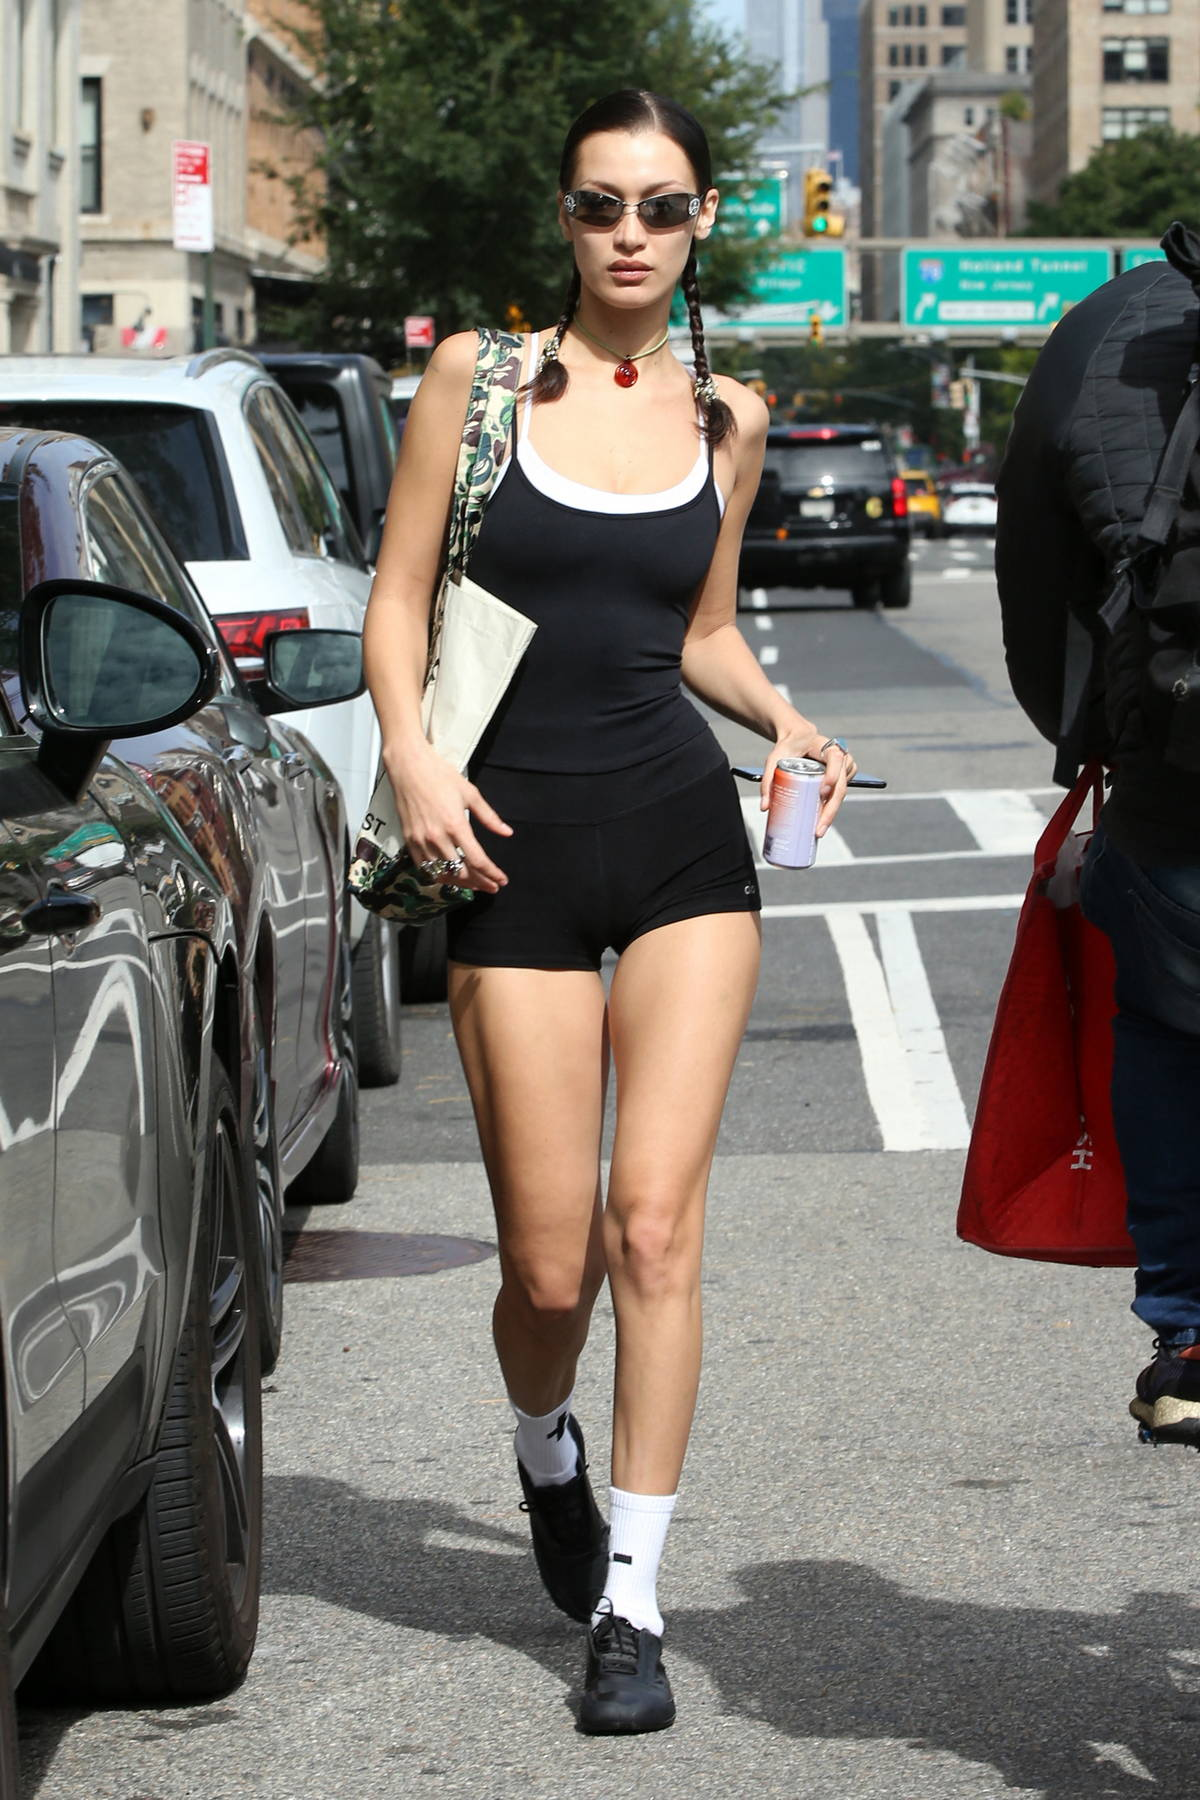 Bella Hadid flaunts her perfectly toned legs in tiny black shorts as she leaves after a workout session in New York City